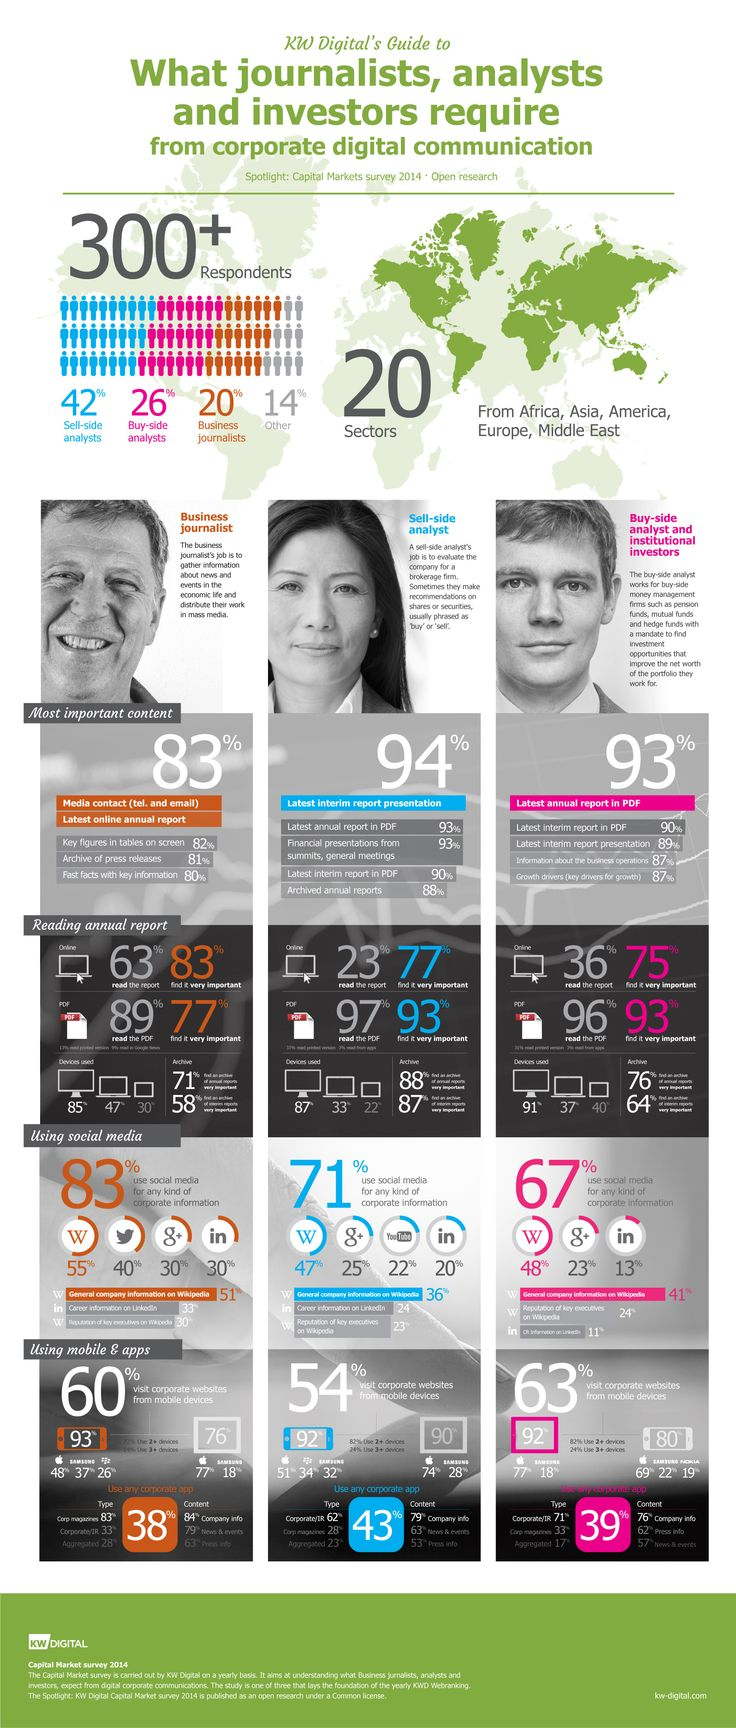 KW Digital Capital markets Survey 2014 - Profiles